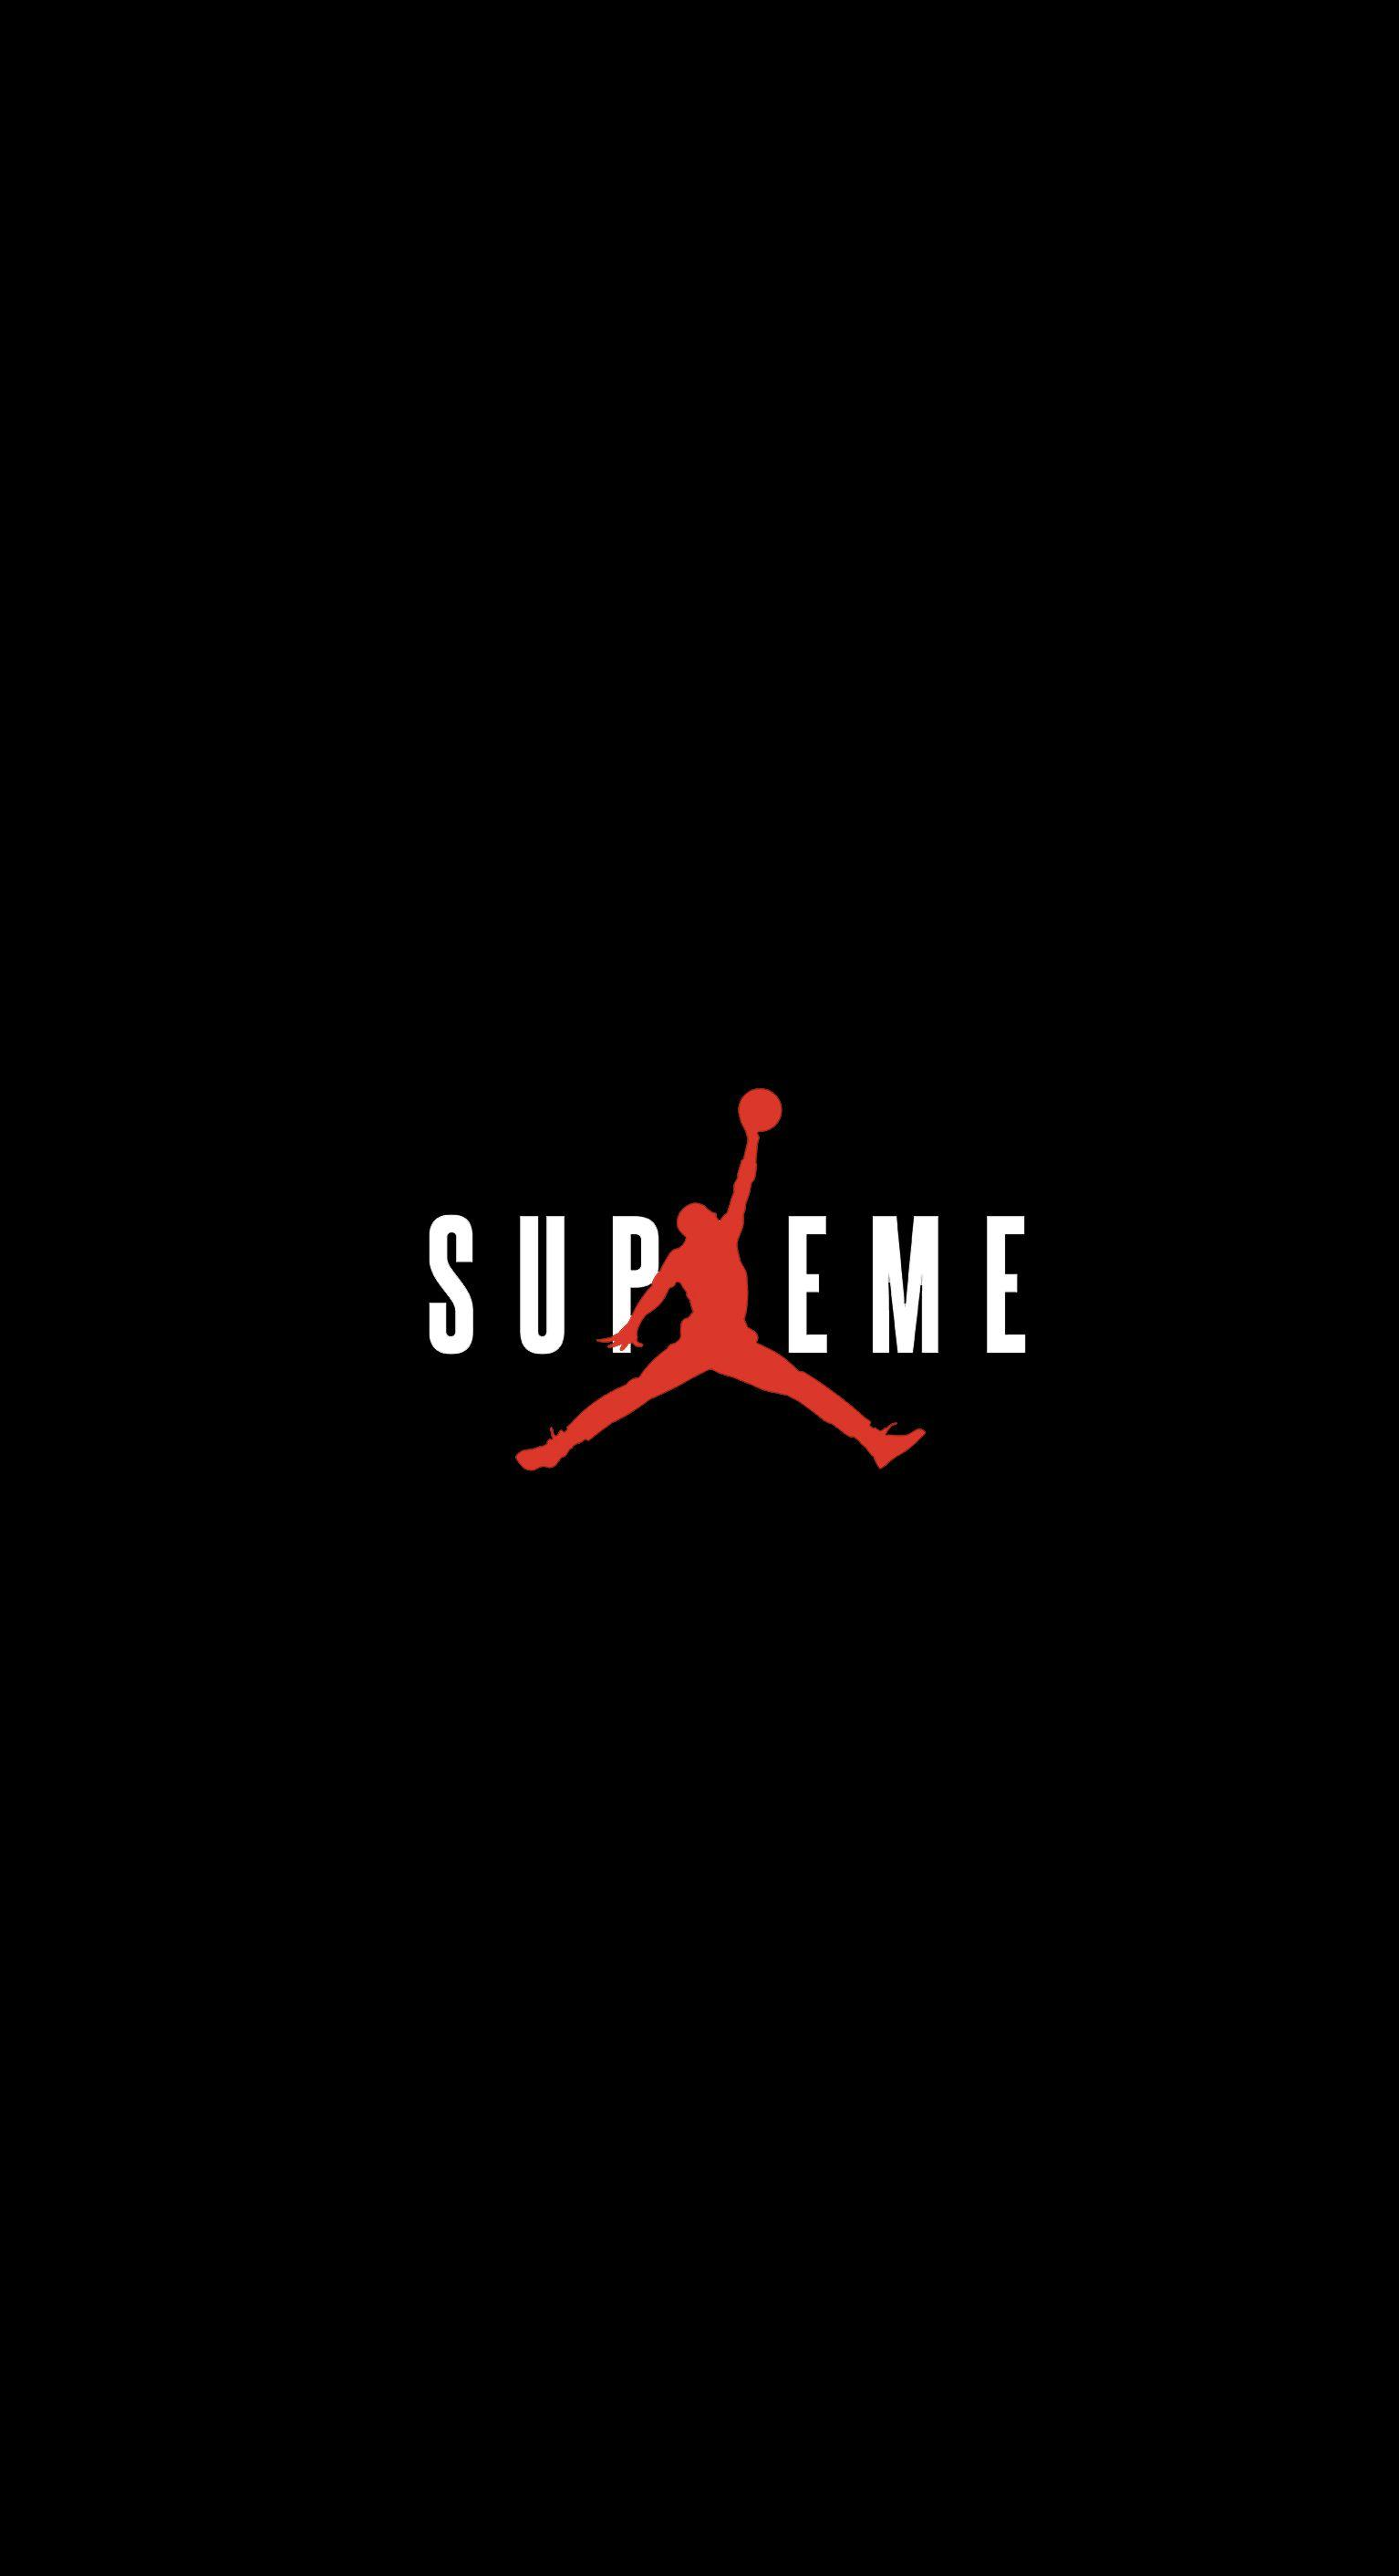 Streetwear wallpapers wallpaper cave - Lustige wallpaper ...